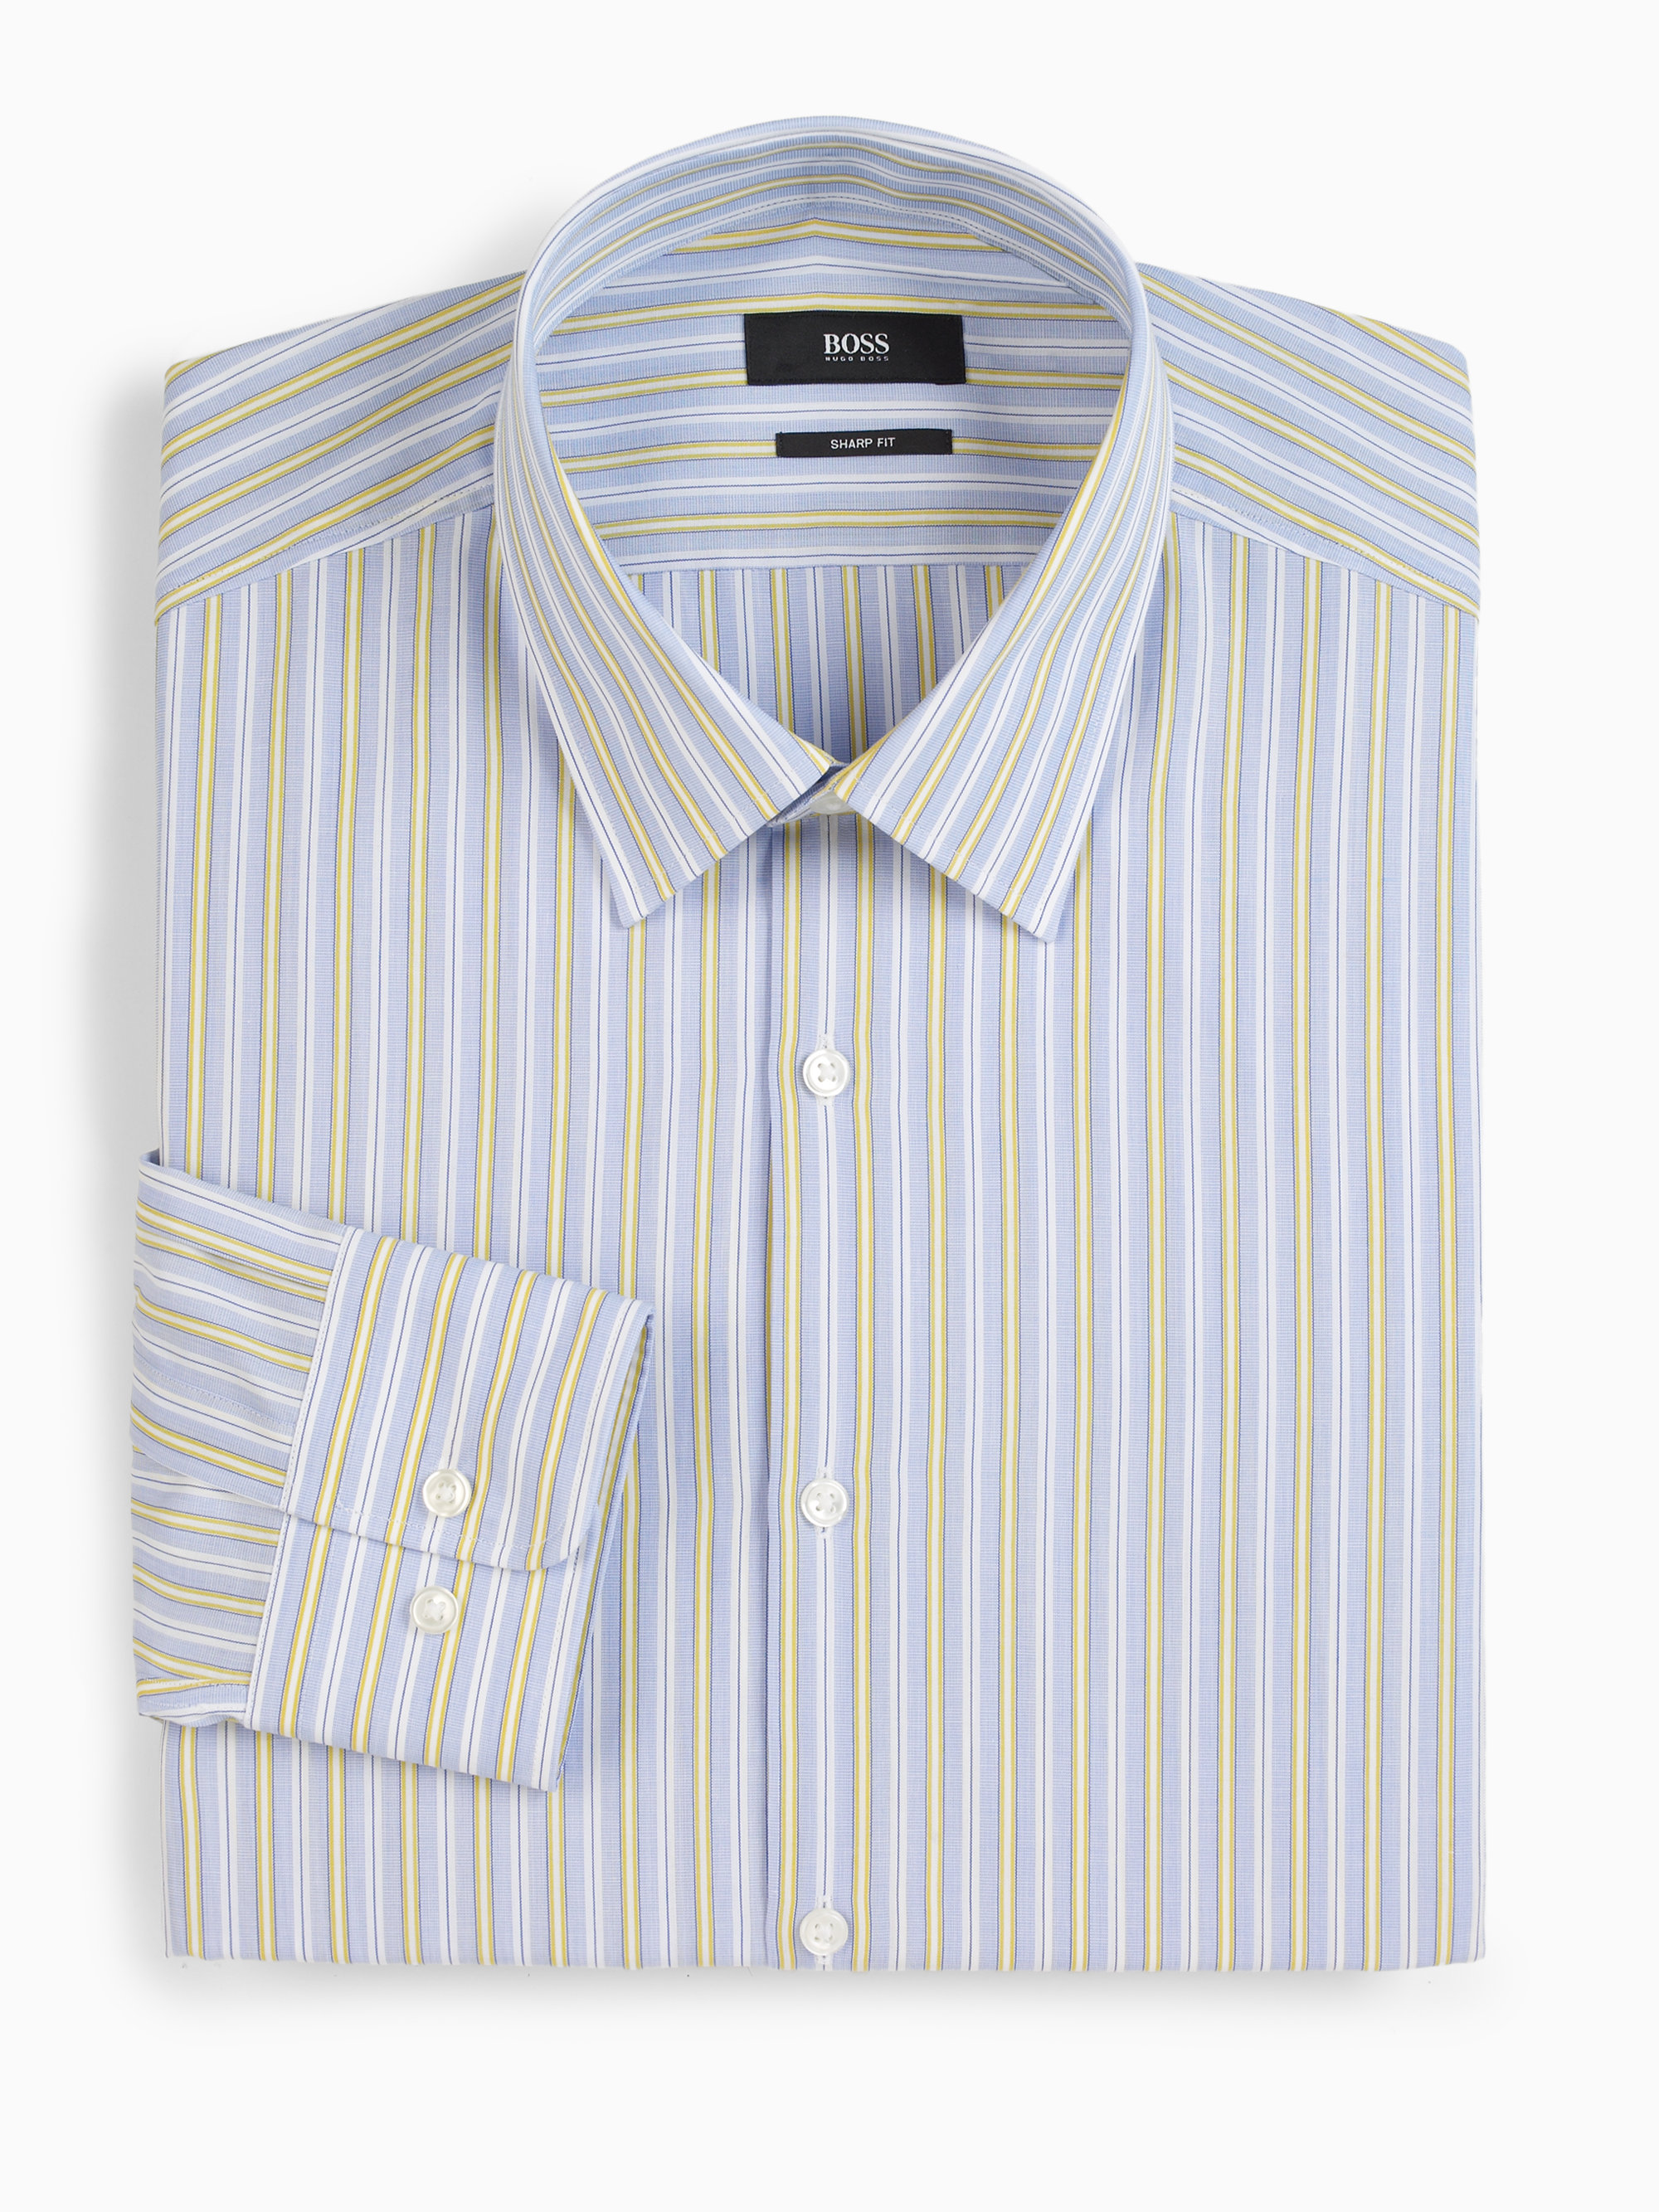 Save on men's dress shirts at Century 21 Department Store. From slim fit dress shirts and solid dress shirts to striped and checkered dress shirts, we have exactly what you need to button up for perfection. DRESS SHIRTS. Black Trend Fit Dress Shirt. $ $ Save 60%. Add to .